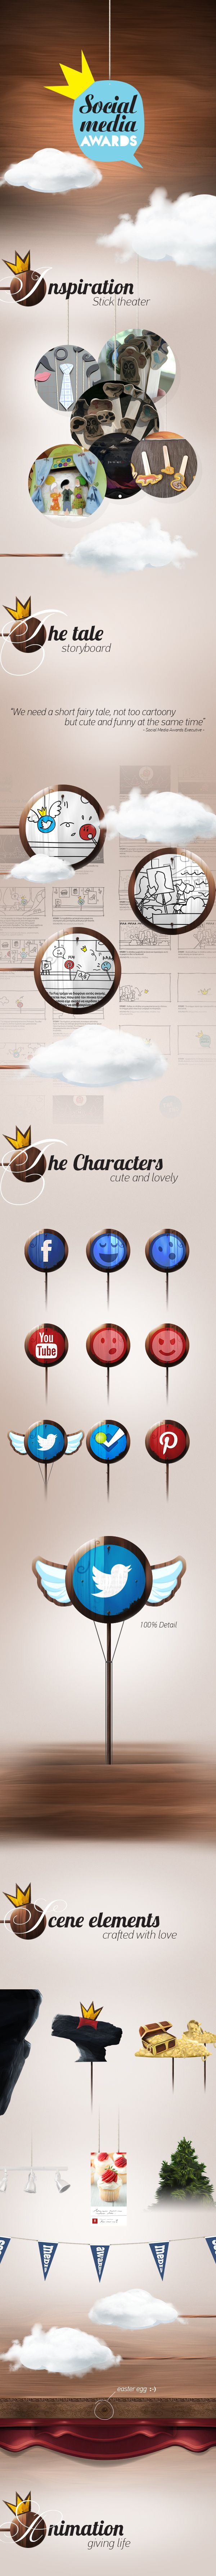 Social Media Awards. Opening Titles by Mike Polizos, via Behance